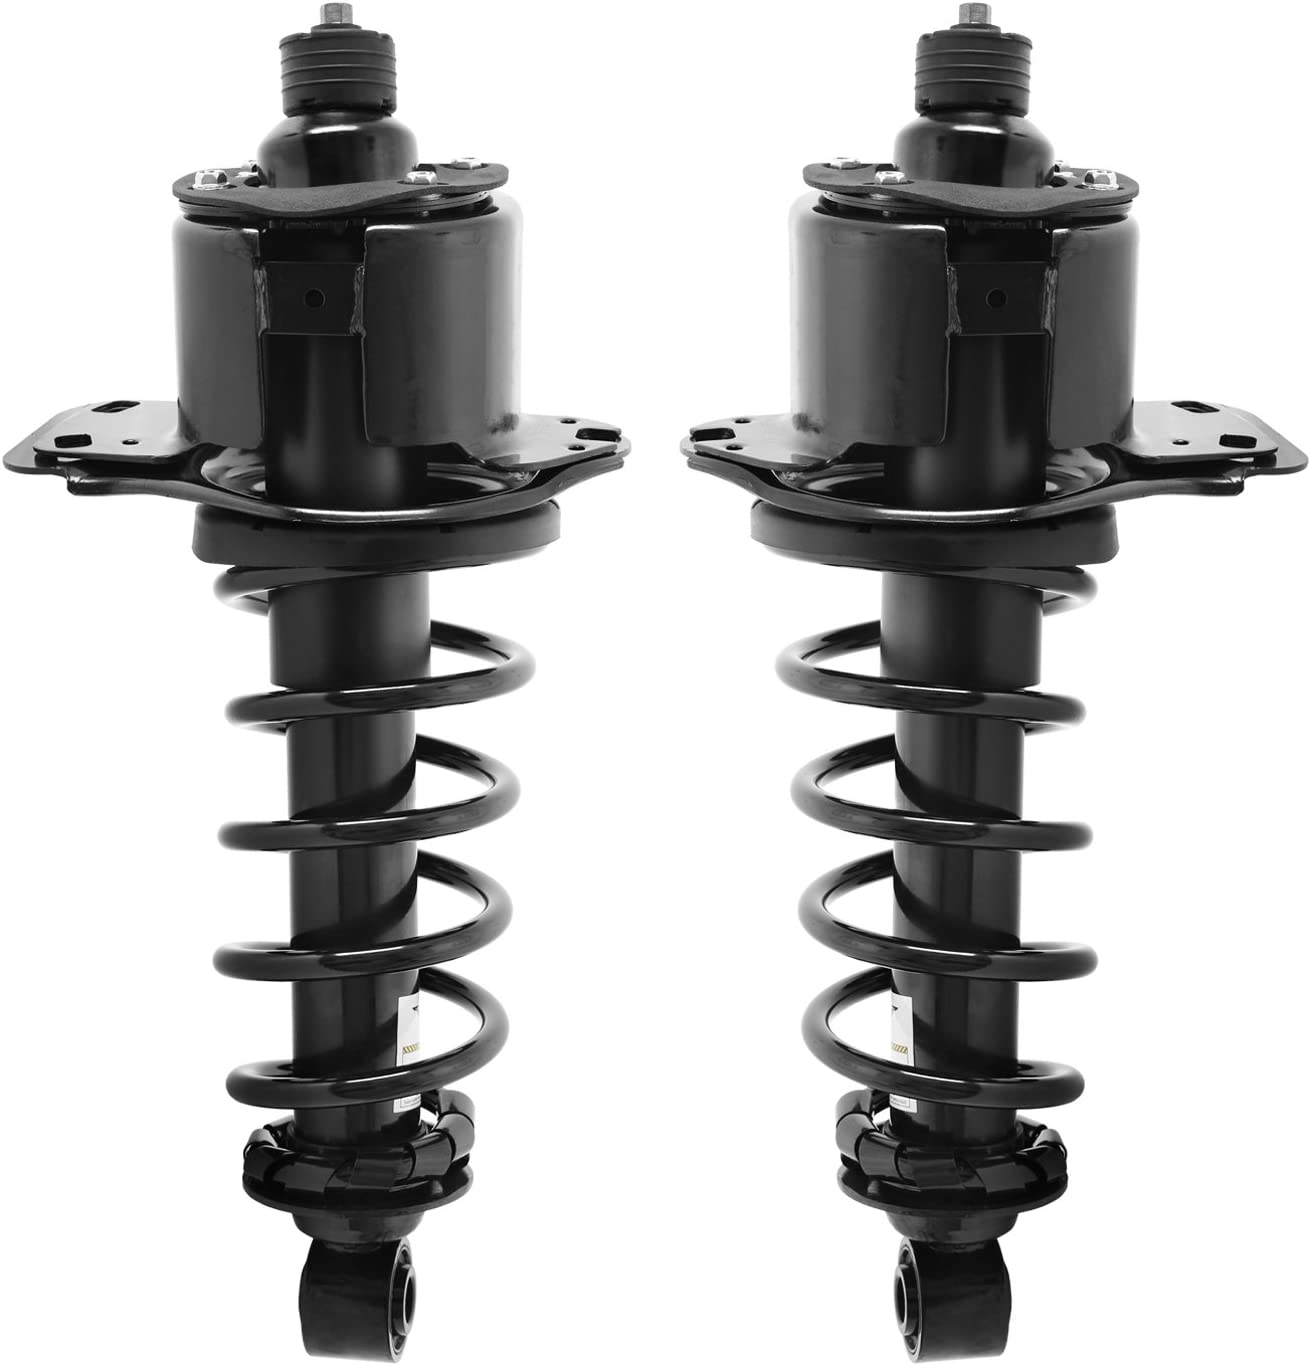 Unity 2-15181-15182-001 Rear 2 Wheel Complete Strut Assembly Kit